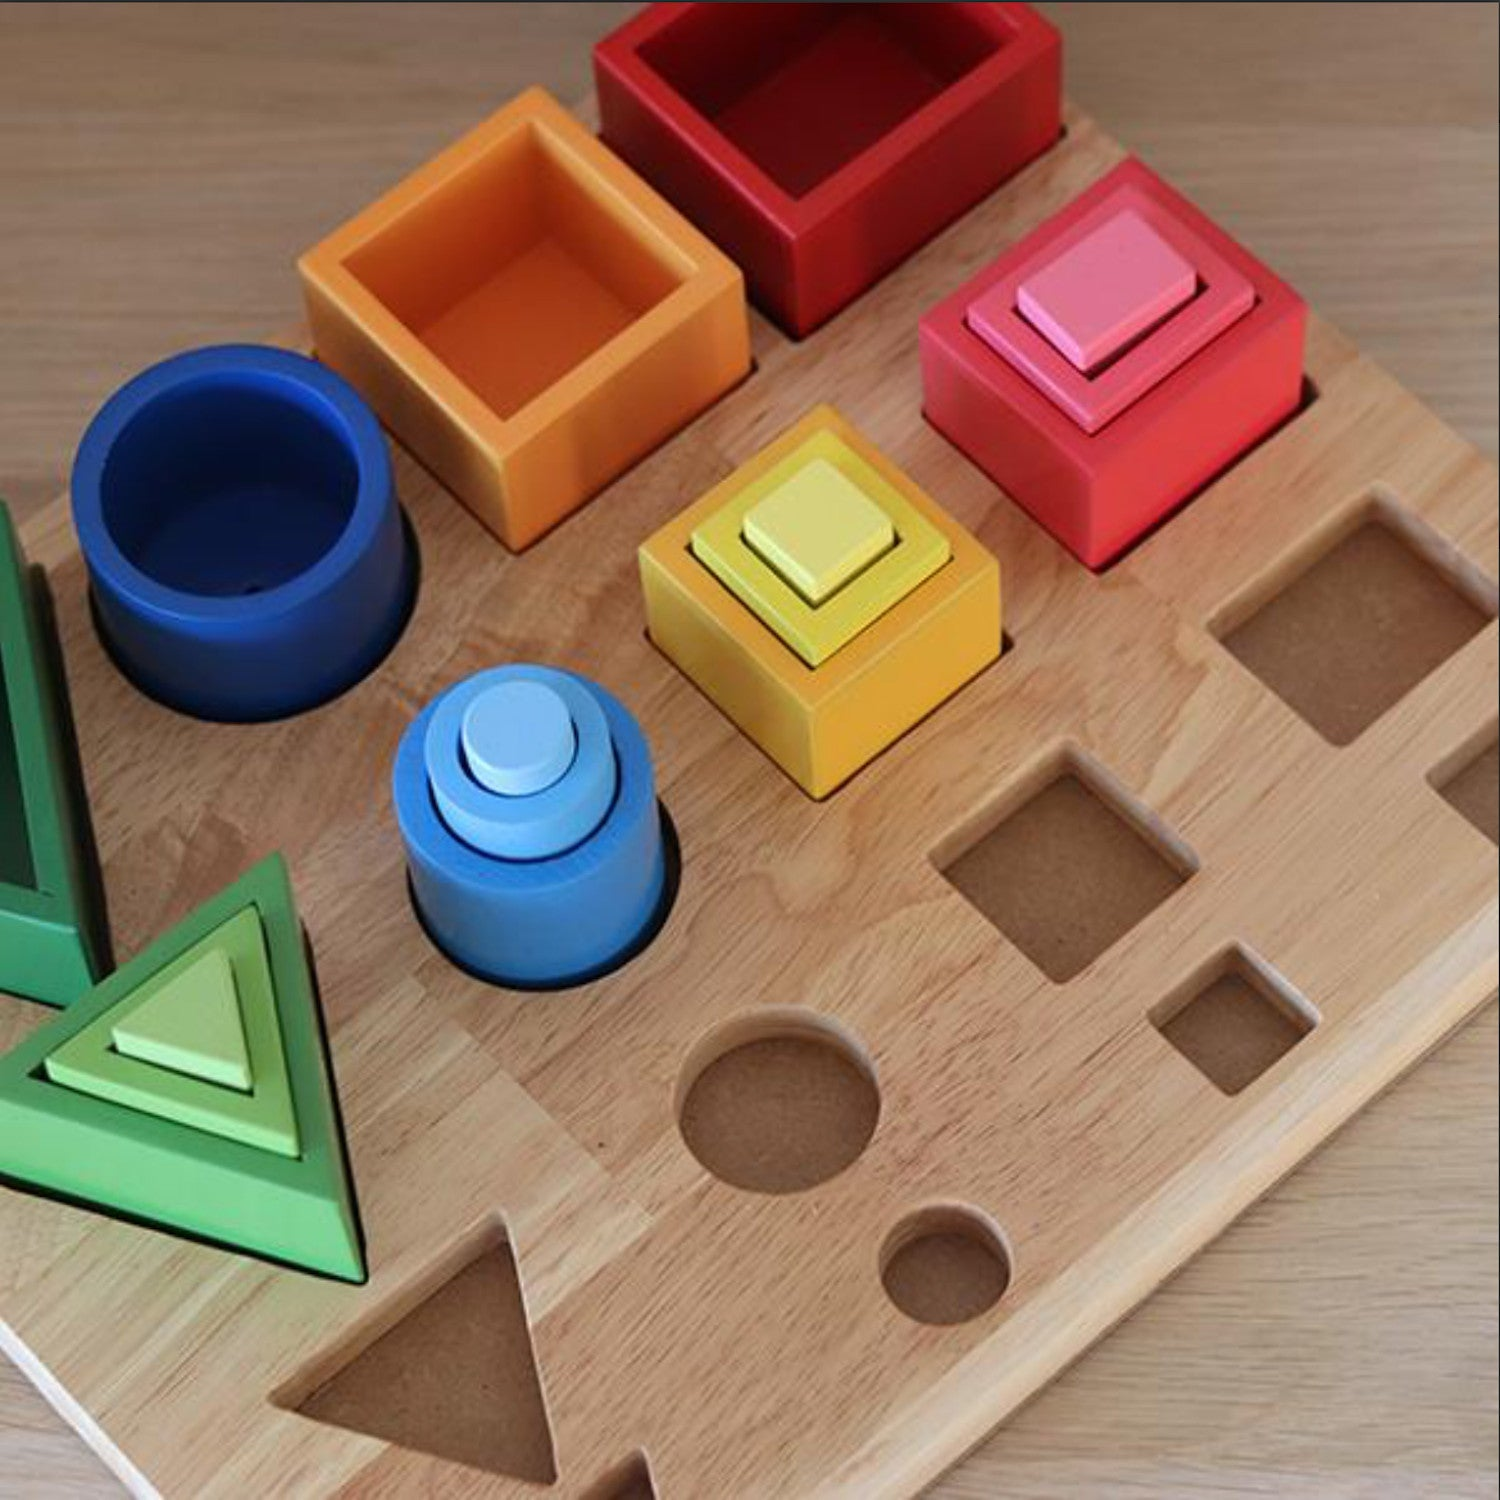 Q Toys 3D Sorting and Nesting Board